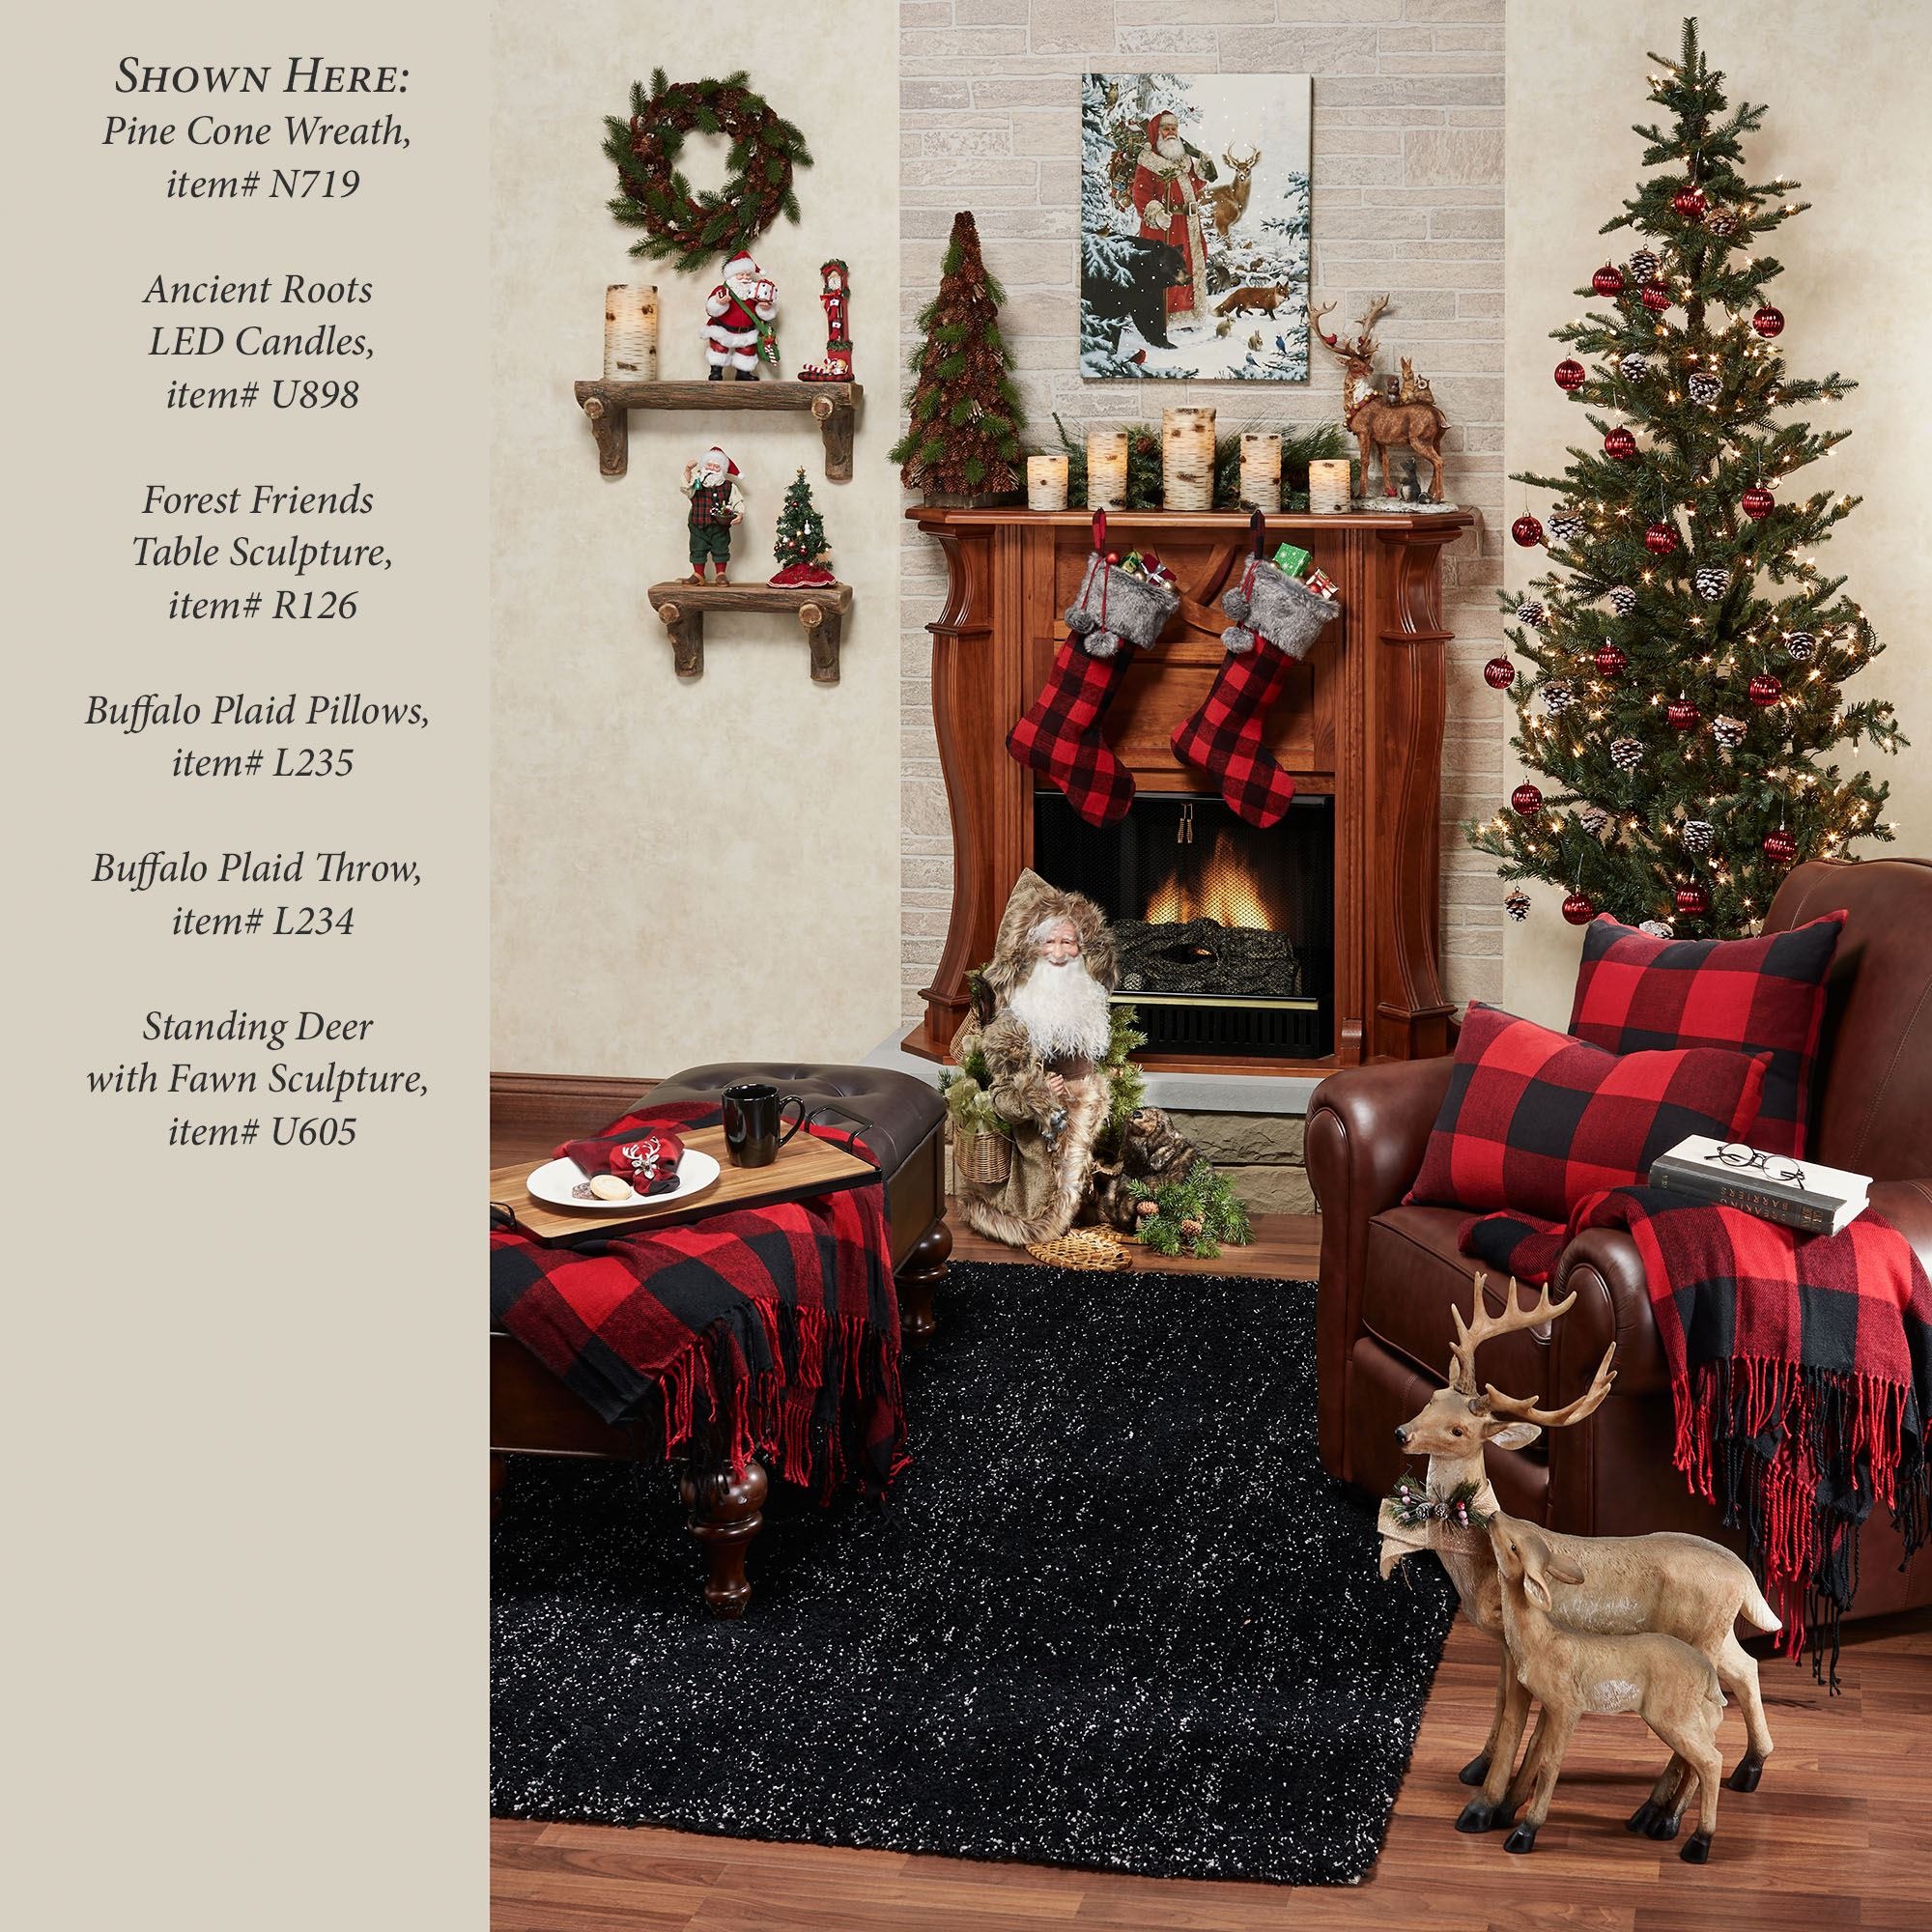 Rustic Buffalo Plaid Red And Black Throw Blanket Or Pillows